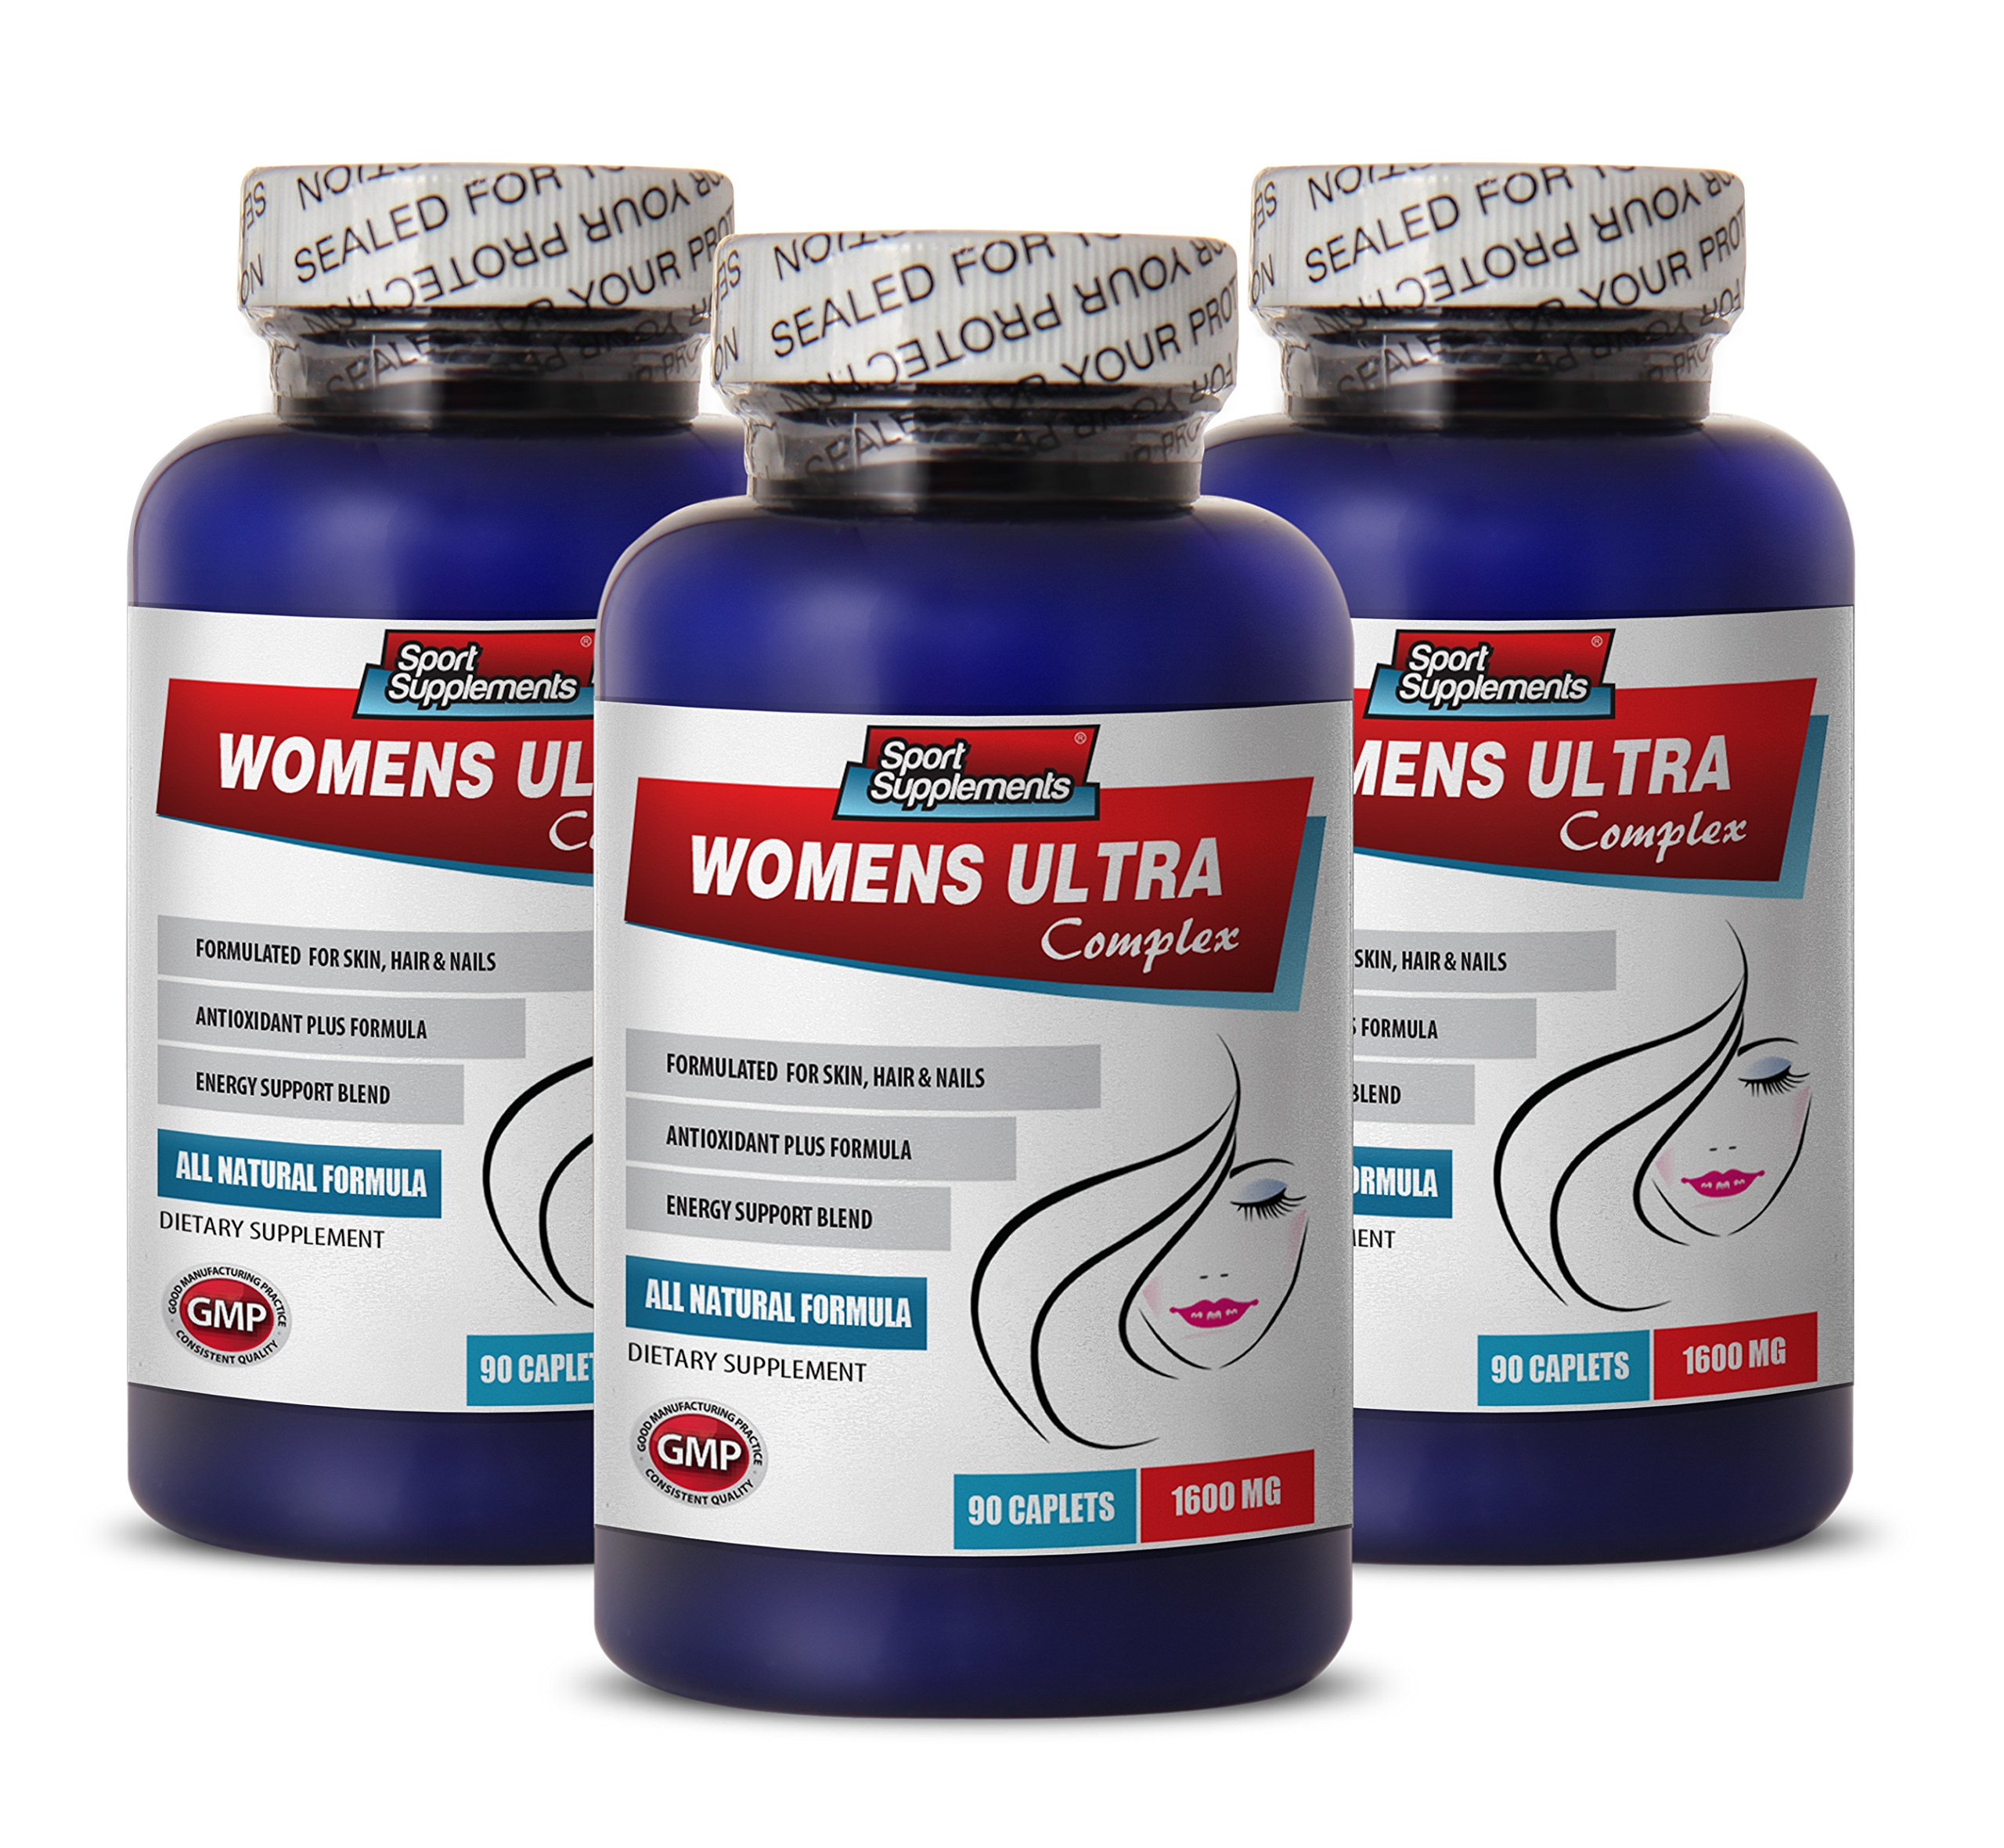 women menopause supplements - WOMENS ULTRA COMPLEX - multivitamin for women natural - 3 Bottles (270 Caplets)